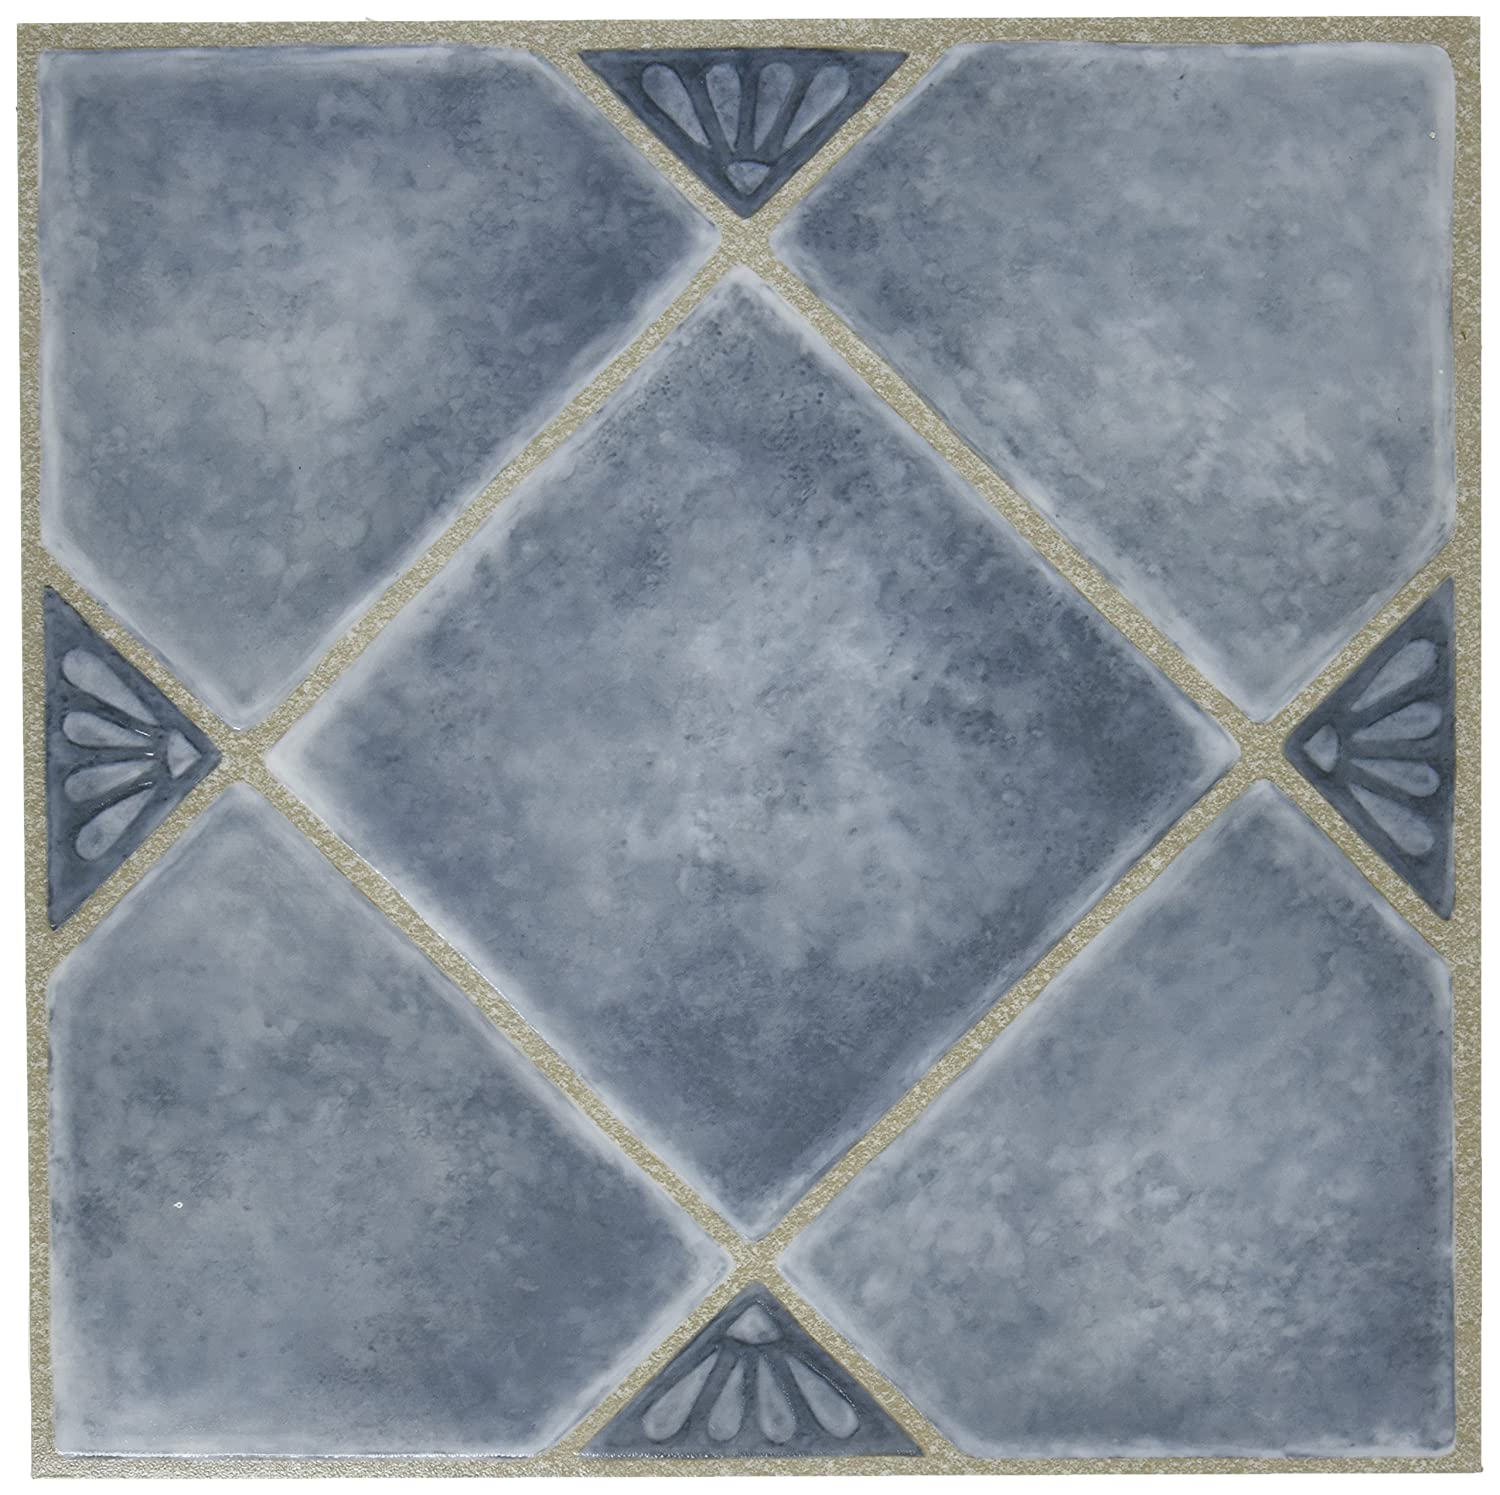 Amazon home dynamix 7984 madison vinyl tile 12 by 12 inch amazon home dynamix 7984 madison vinyl tile 12 by 12 inch blue box of 9 home kitchen dailygadgetfo Gallery